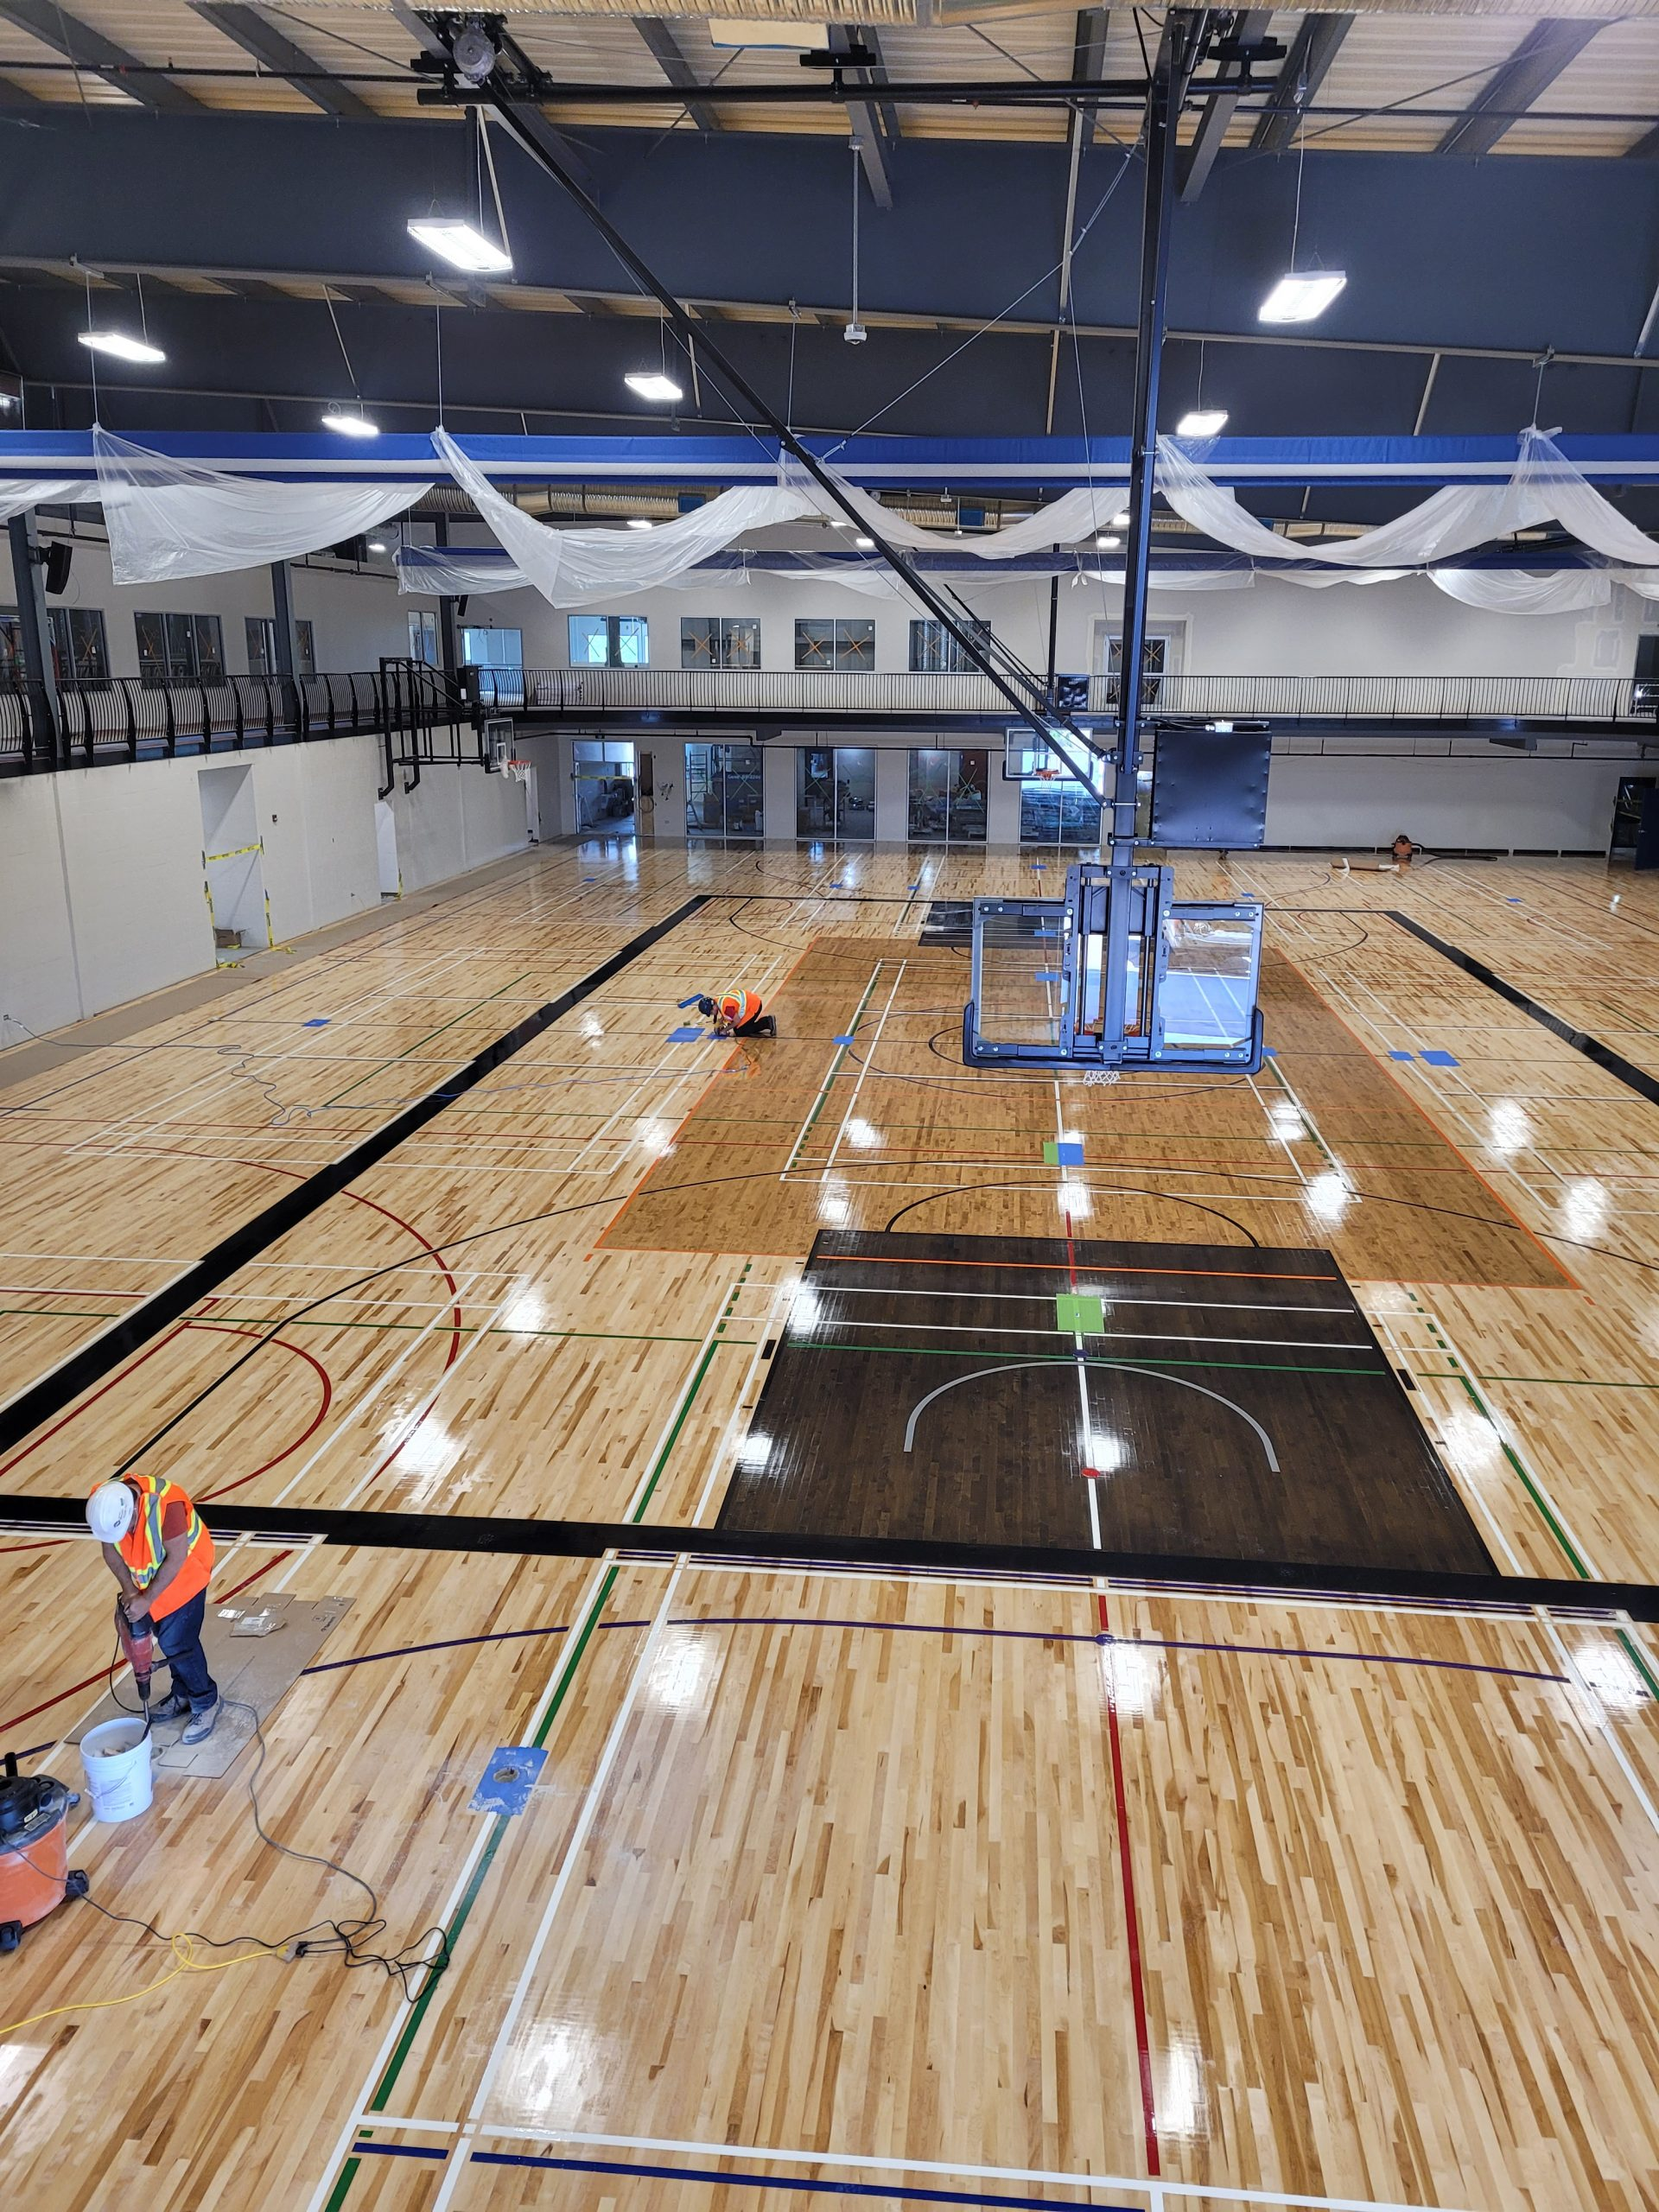 June 2021 - Still working on the fieldhouse floor lines!